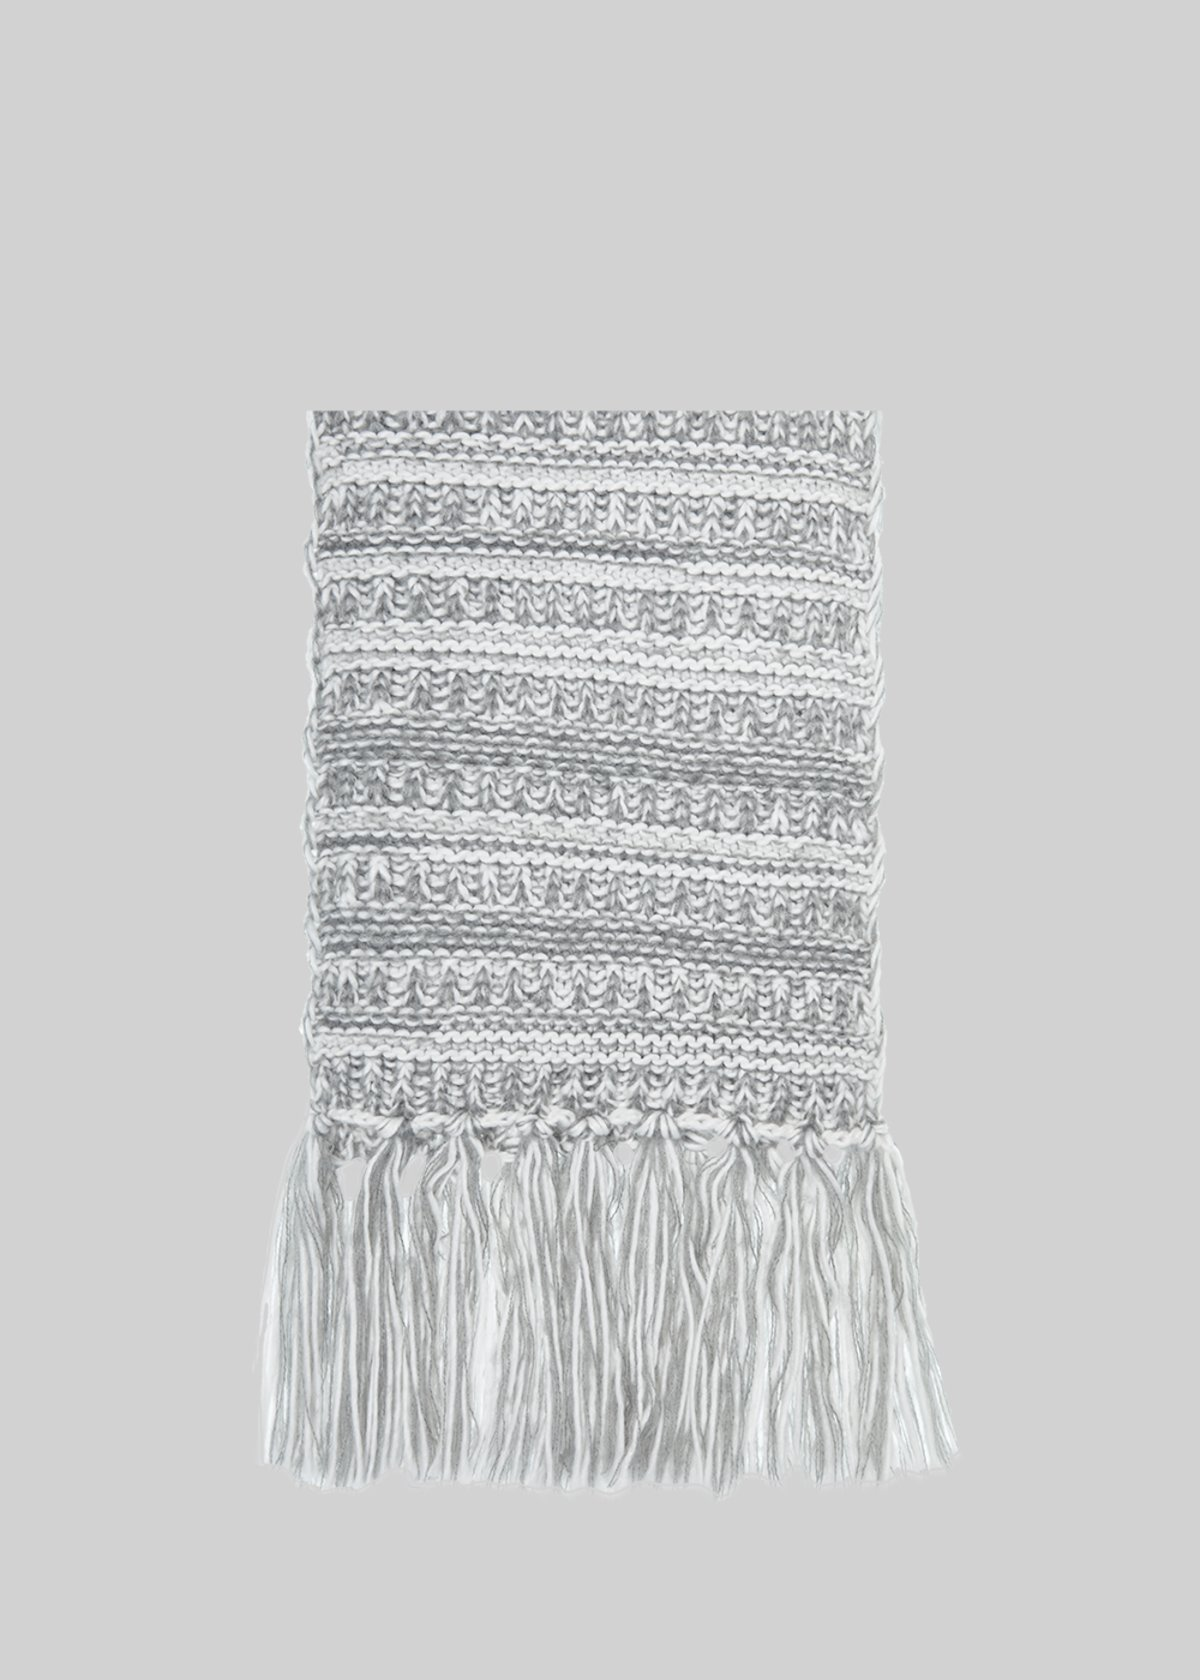 Shayne scarf with fringes detail at the bottom